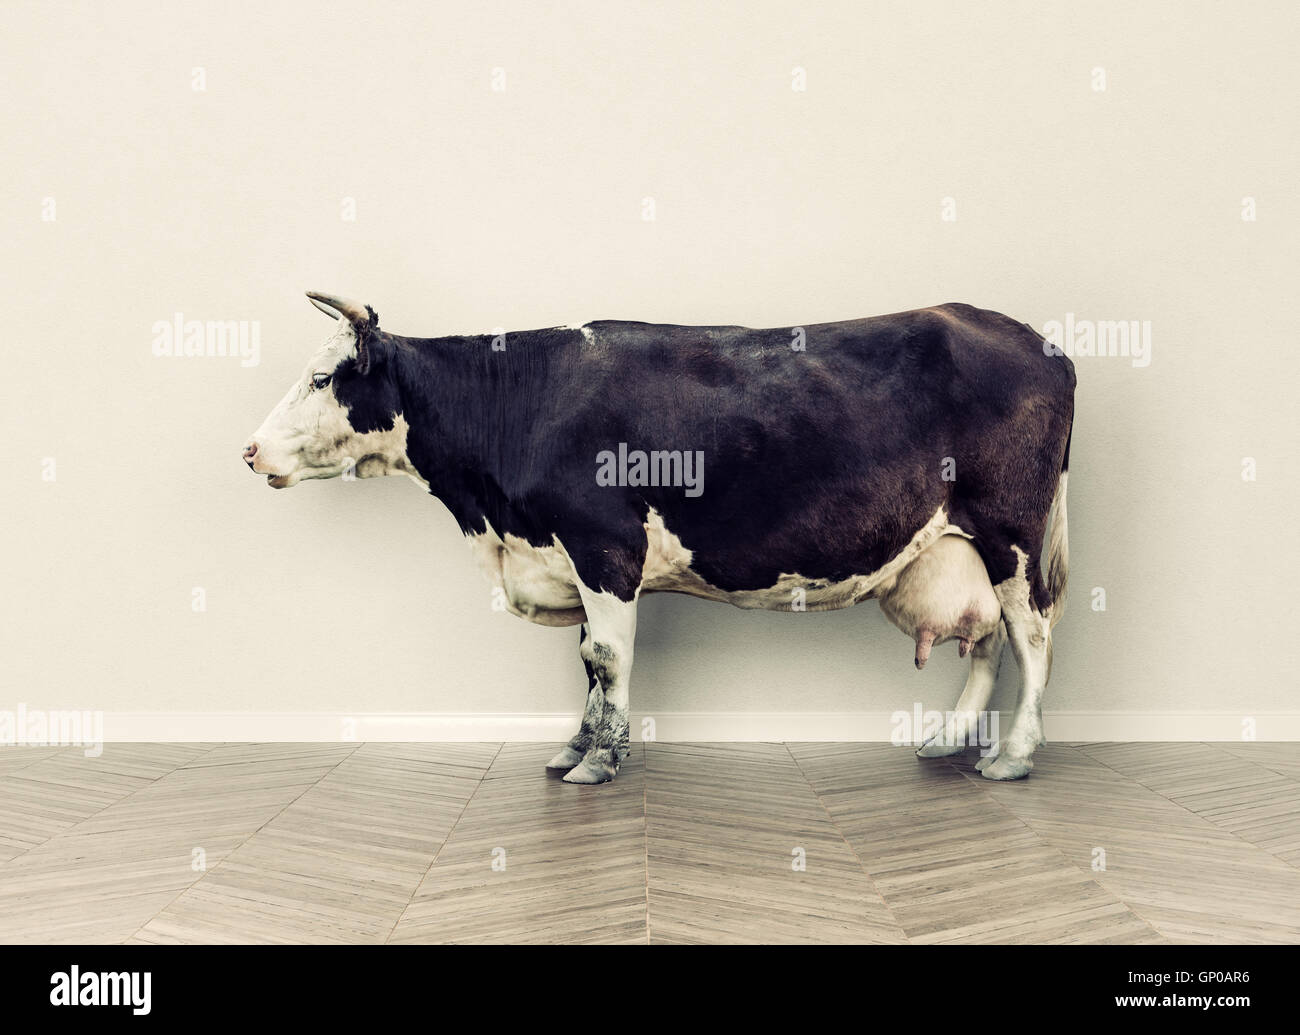 the cow in a room near white wall. Creative photo combination concept - Stock Image